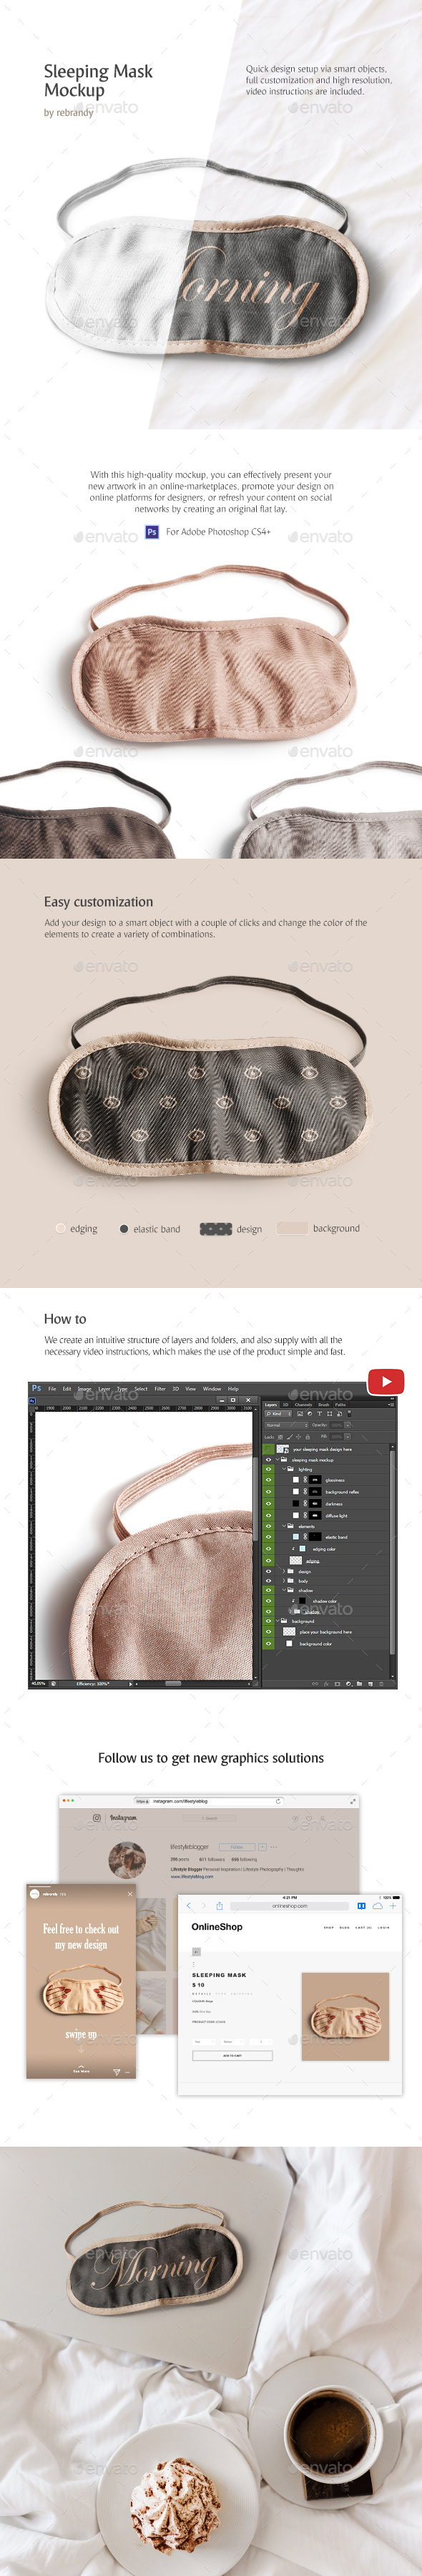 Sleeping Mask Mockup - Product Mock-Ups Graphics